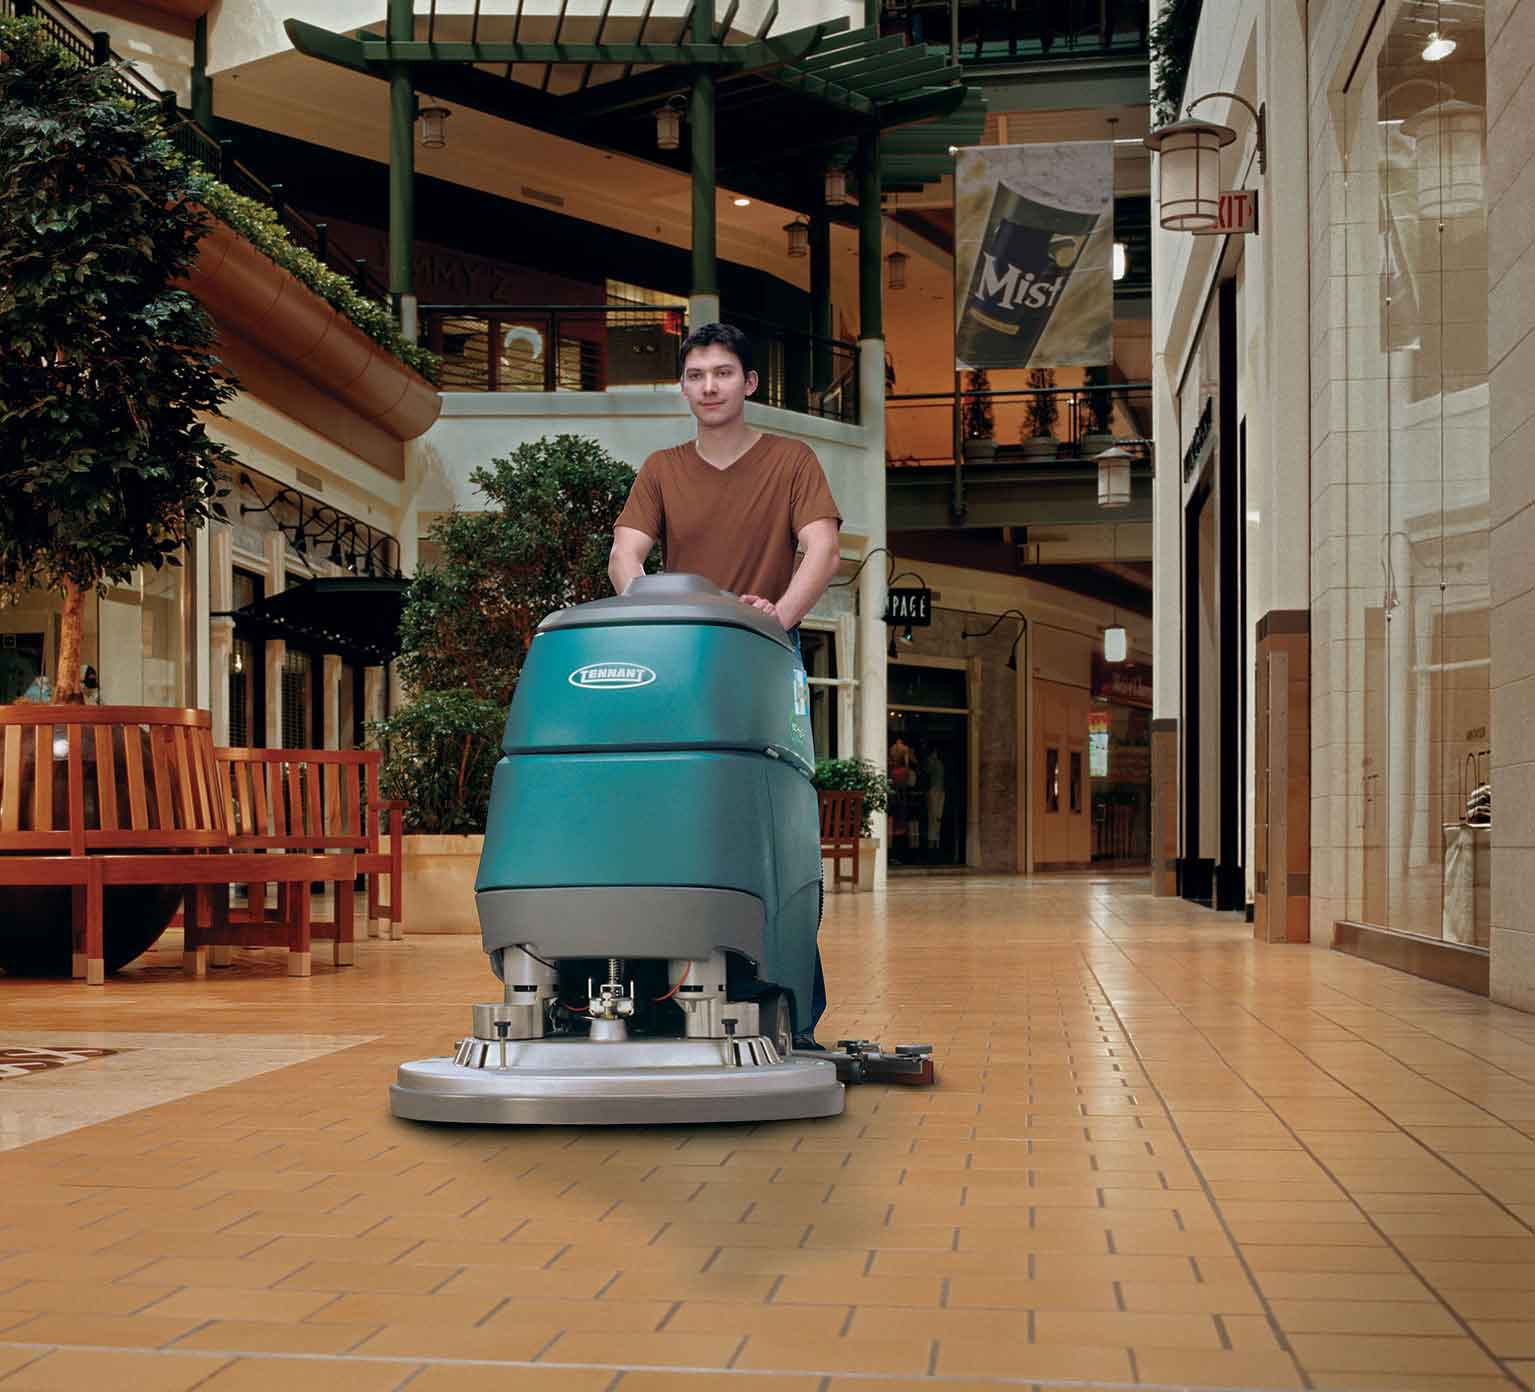 T5 Mid Size Walk Behind Scrubber Tennant Company